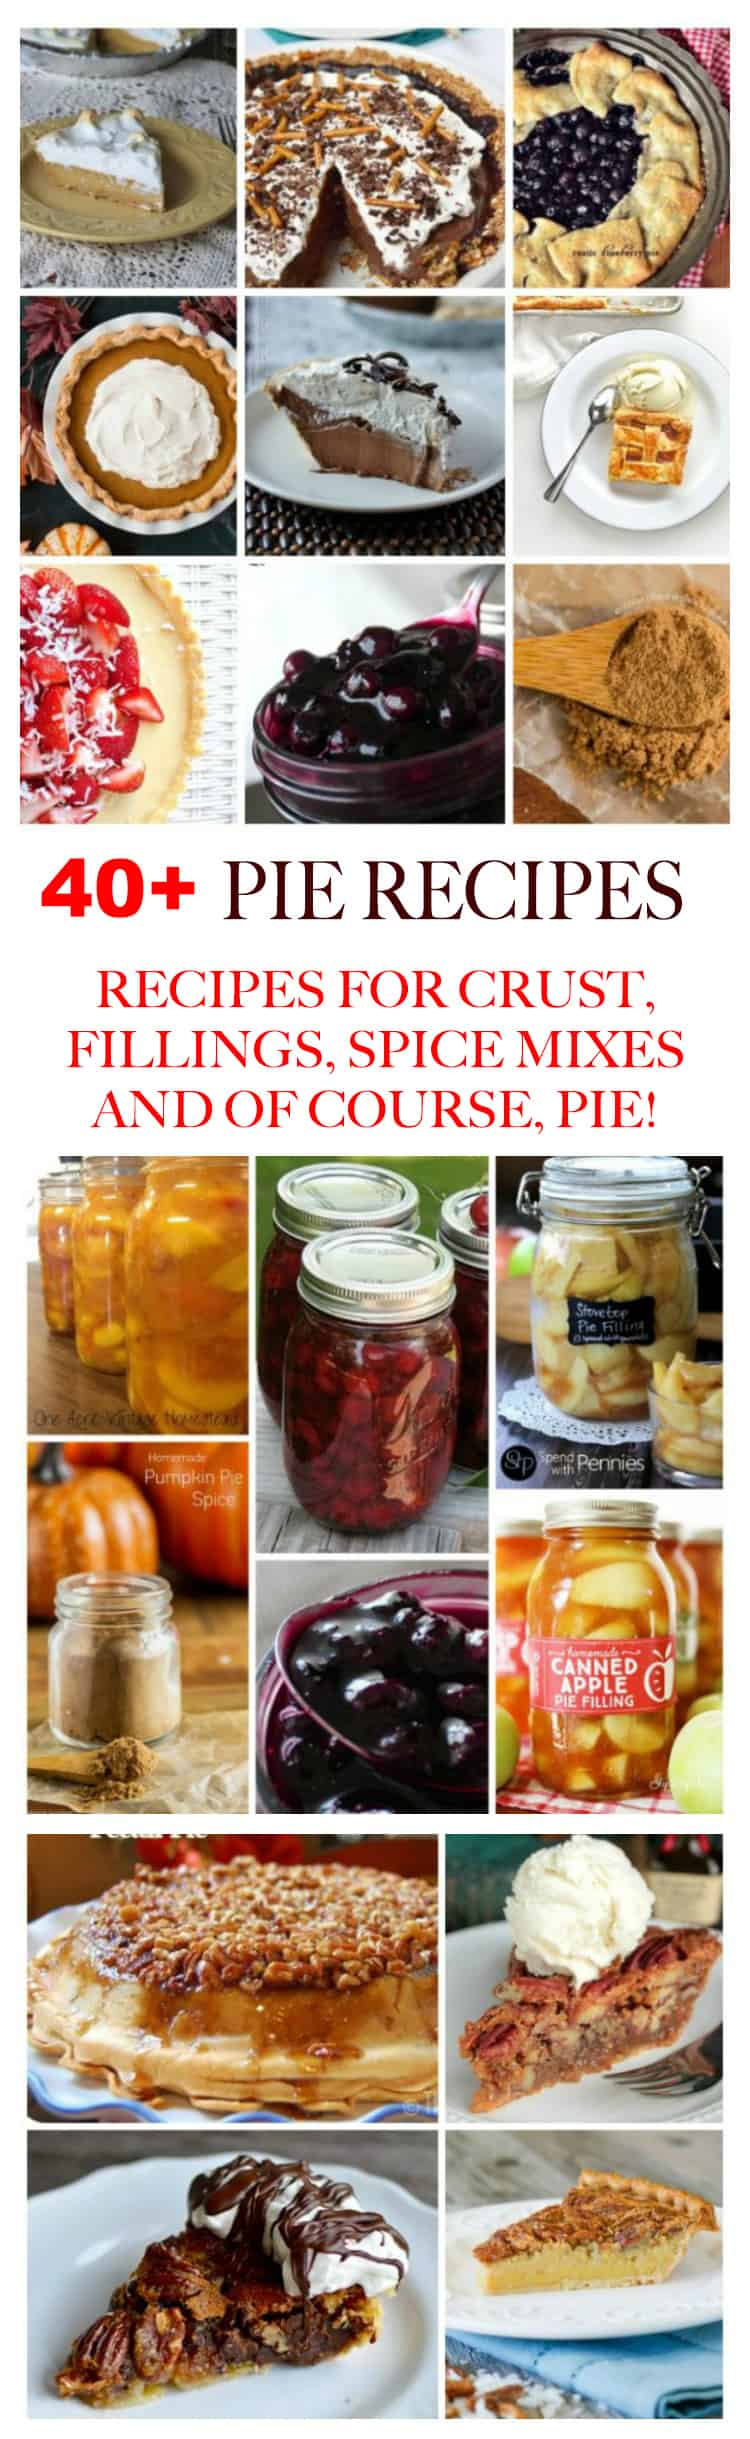 The holidays aren't the holidays without homemade pie. Pie recipes include fruit pie, cream pie, pumpkin and pecan pie, plus recipes for filing and crust! This is an excellent resource for all things pie!